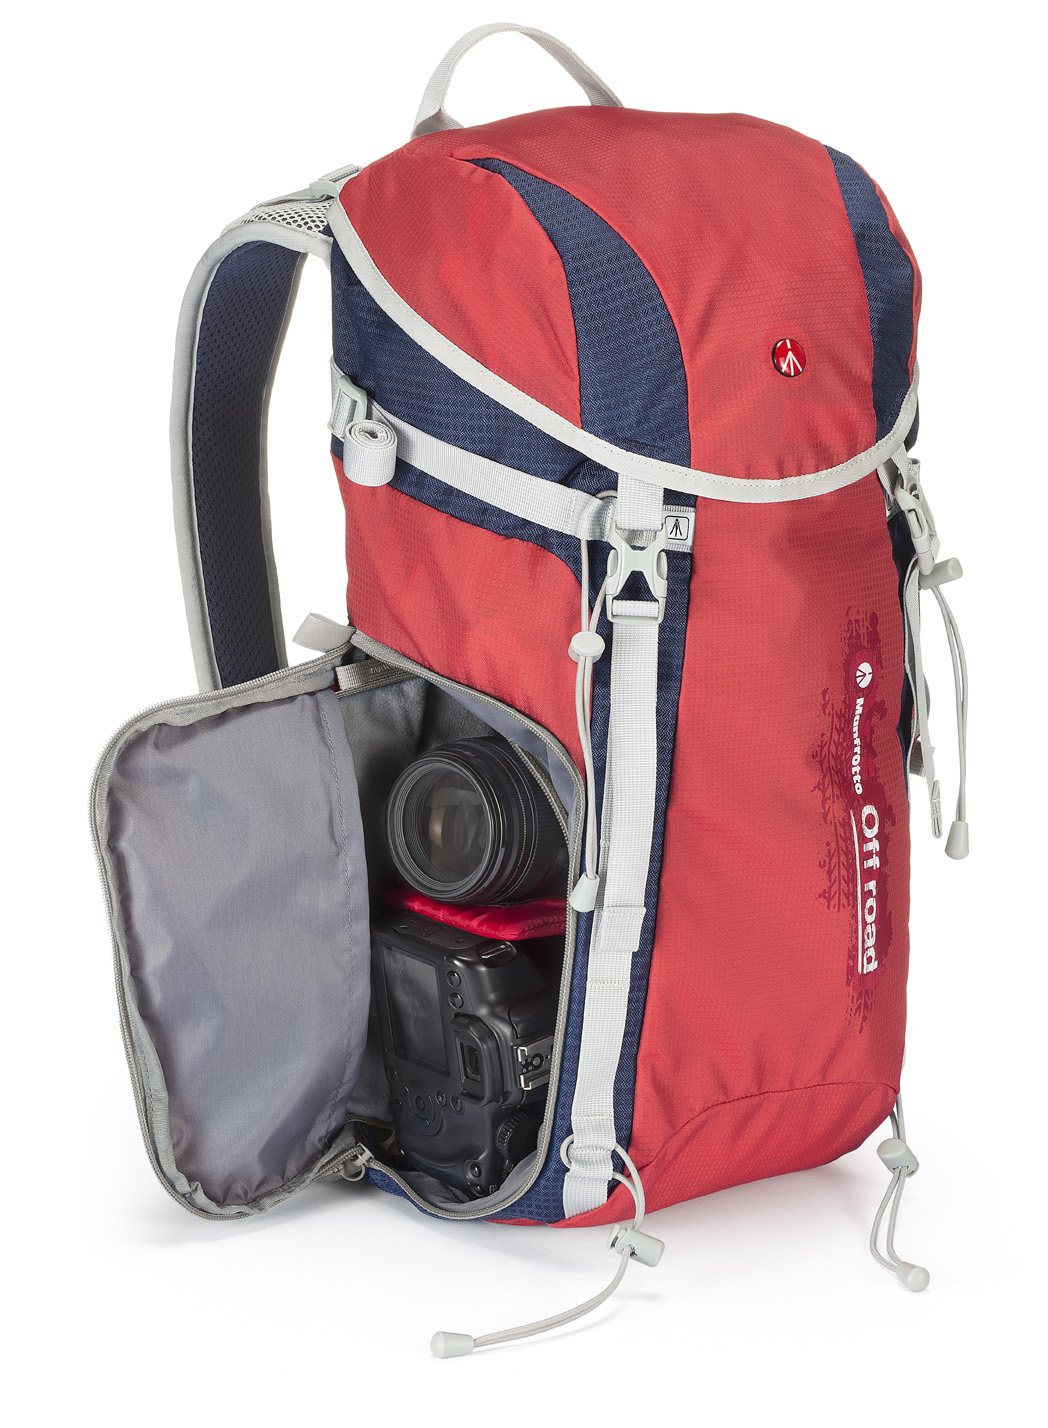 Image by Manfrotto: Offroad 20L camera backpack